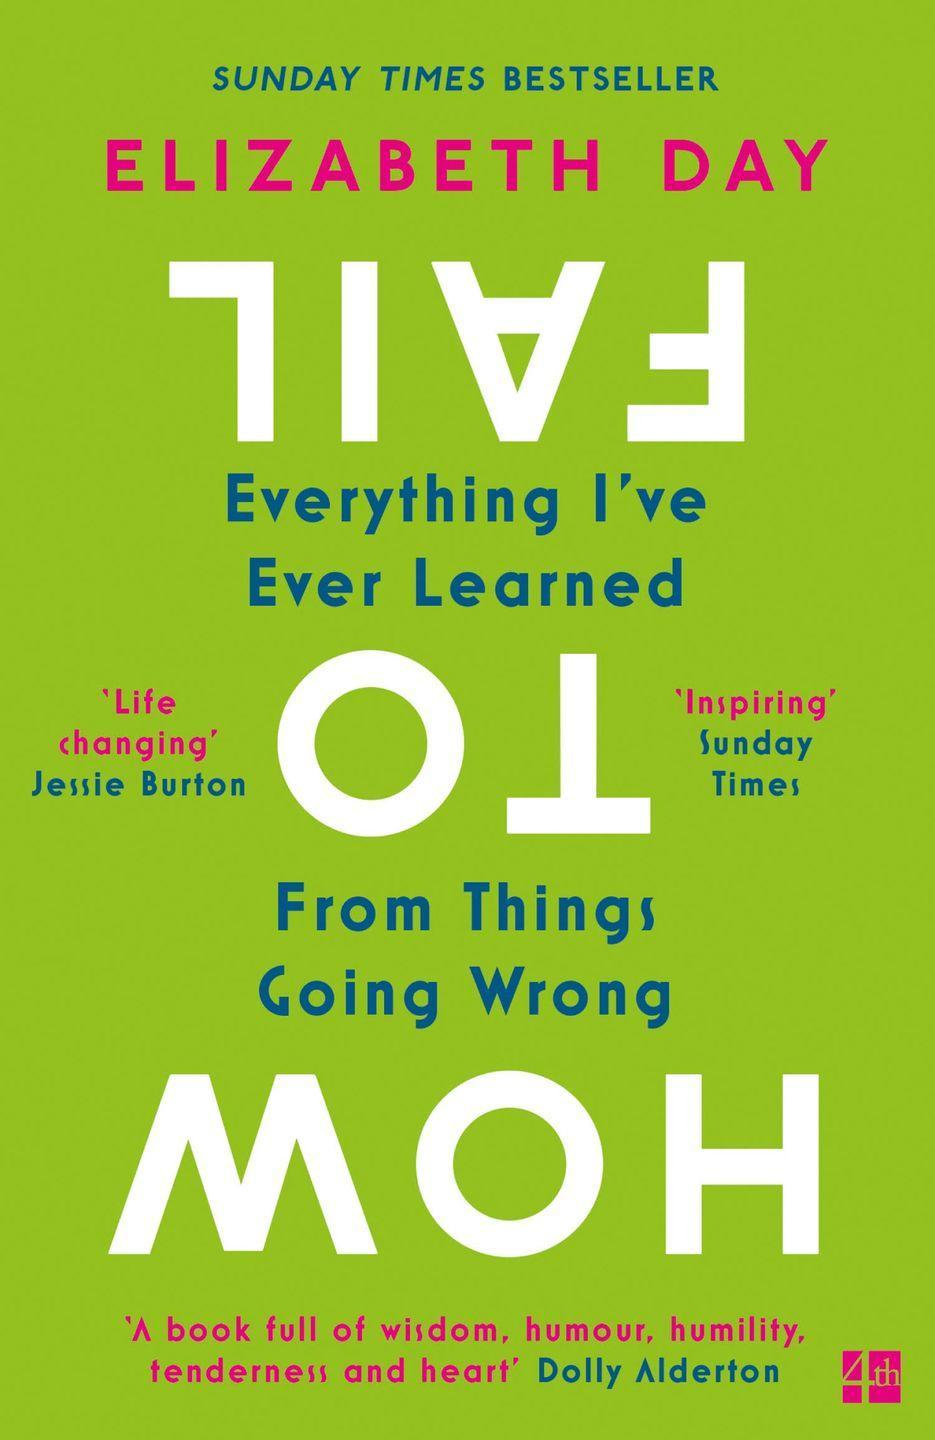 """<p>Bazaar contributing editor Elizabeth Day takes the message of her cult podcast to this stirring book. Part memoir, part inspirational guide, it's all about learning how to embrace failure in order to know how to succeed better.</p><p><strong>Read Bazaar's interview with Elizabeth Day in the <a href=""""https://magsdirect.co.uk/magazine/harpers-bazaar-uk-dec-20/"""" rel=""""nofollow noopener"""" target=""""_blank"""" data-ylk=""""slk:December 2020"""" class=""""link rapid-noclick-resp"""">December 2020 </a>issue. </strong></p><p><a class=""""link rapid-noclick-resp"""" href=""""https://www.amazon.co.uk/How-Fail-Everything-Learned-Things/dp/0008327351/ref=asc_df_0008327351/?tag=hearstuk-yahoo-21&linkCode=df0&hvadid=406170683277&hvadid=406170683277&hvnetw=g&hvnetw=g&hvrand=2031856988973434488&hvrand=2031856988973434488&hvdev=c&hvdev=c&hvlocphy=9045954&hvlocphy=9045954&hvtargid=pla-855778220525&hvtargid=pla-855778220525&psc=1&psc=1&th=1&adgrpid=88284845402&ascsubtag=%5Bartid%7C1927.g.35995848%5Bsrc%7Cyahoo-uk"""" rel=""""nofollow noopener"""" target=""""_blank"""" data-ylk=""""slk:SHOP NOW"""">SHOP NOW</a></p>"""